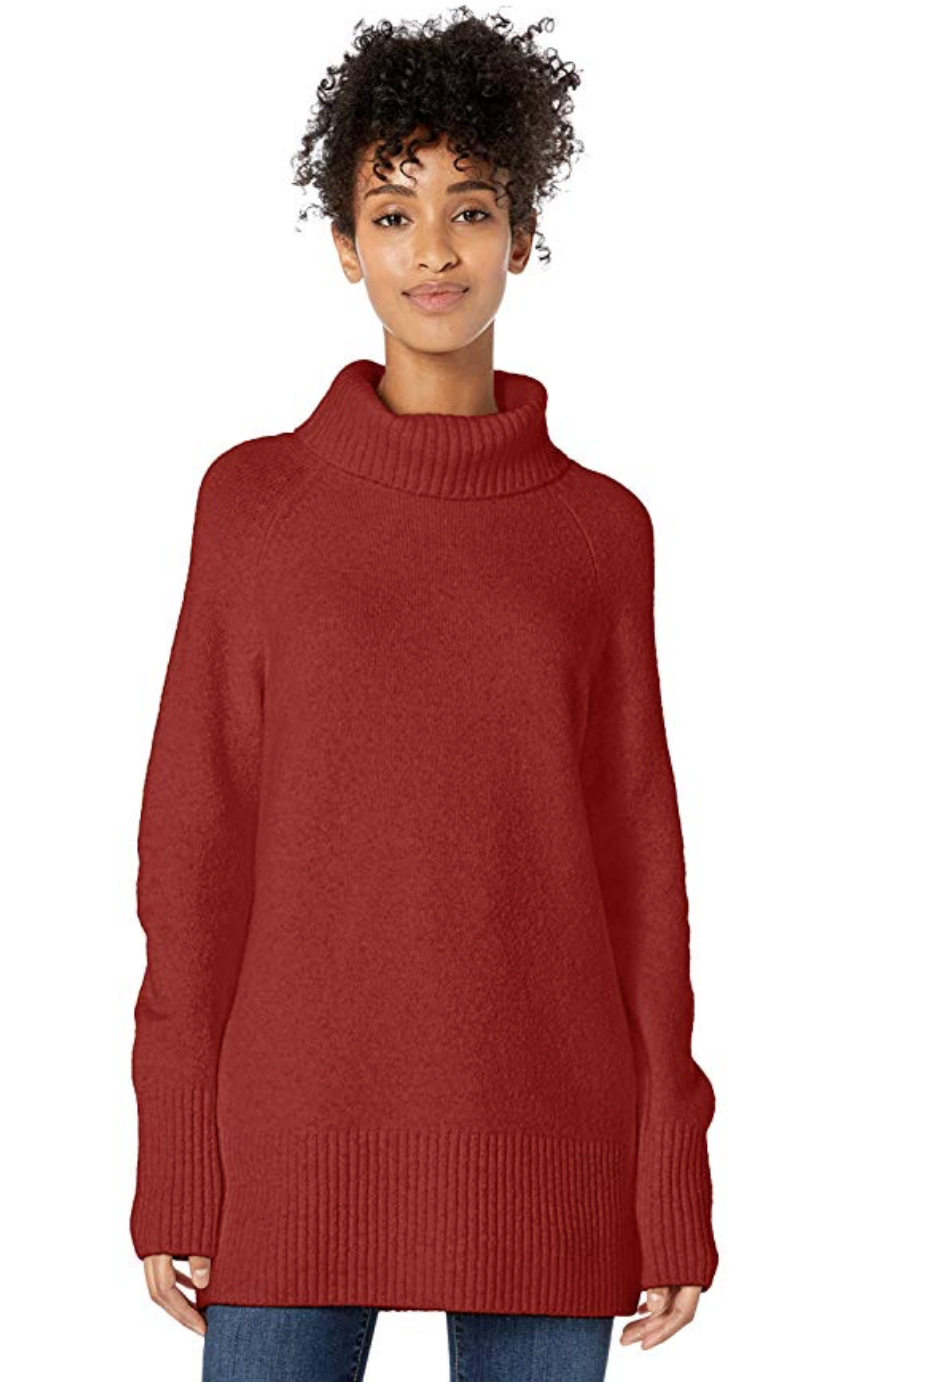 My Amazon Winter Fashion Favorites by popular Chicago fashion blog, Glass of Glam: image of a woman wearing a Amazon Goodthreads Women's Boucle Turtleneck Sweater.